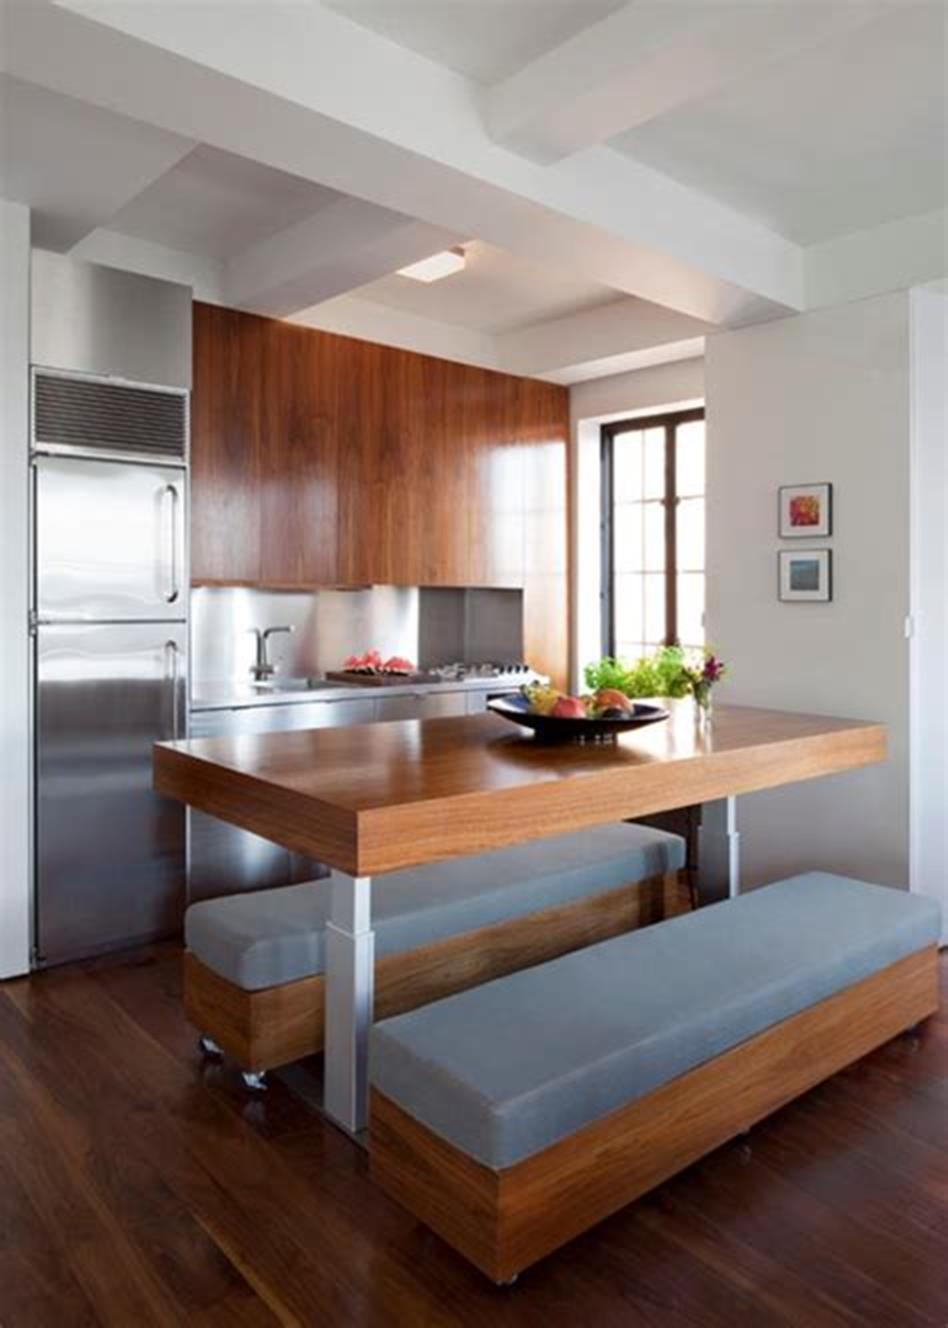 43 Amazing Kitchen Remodeling Ideas for Small Kitchens 2019 64